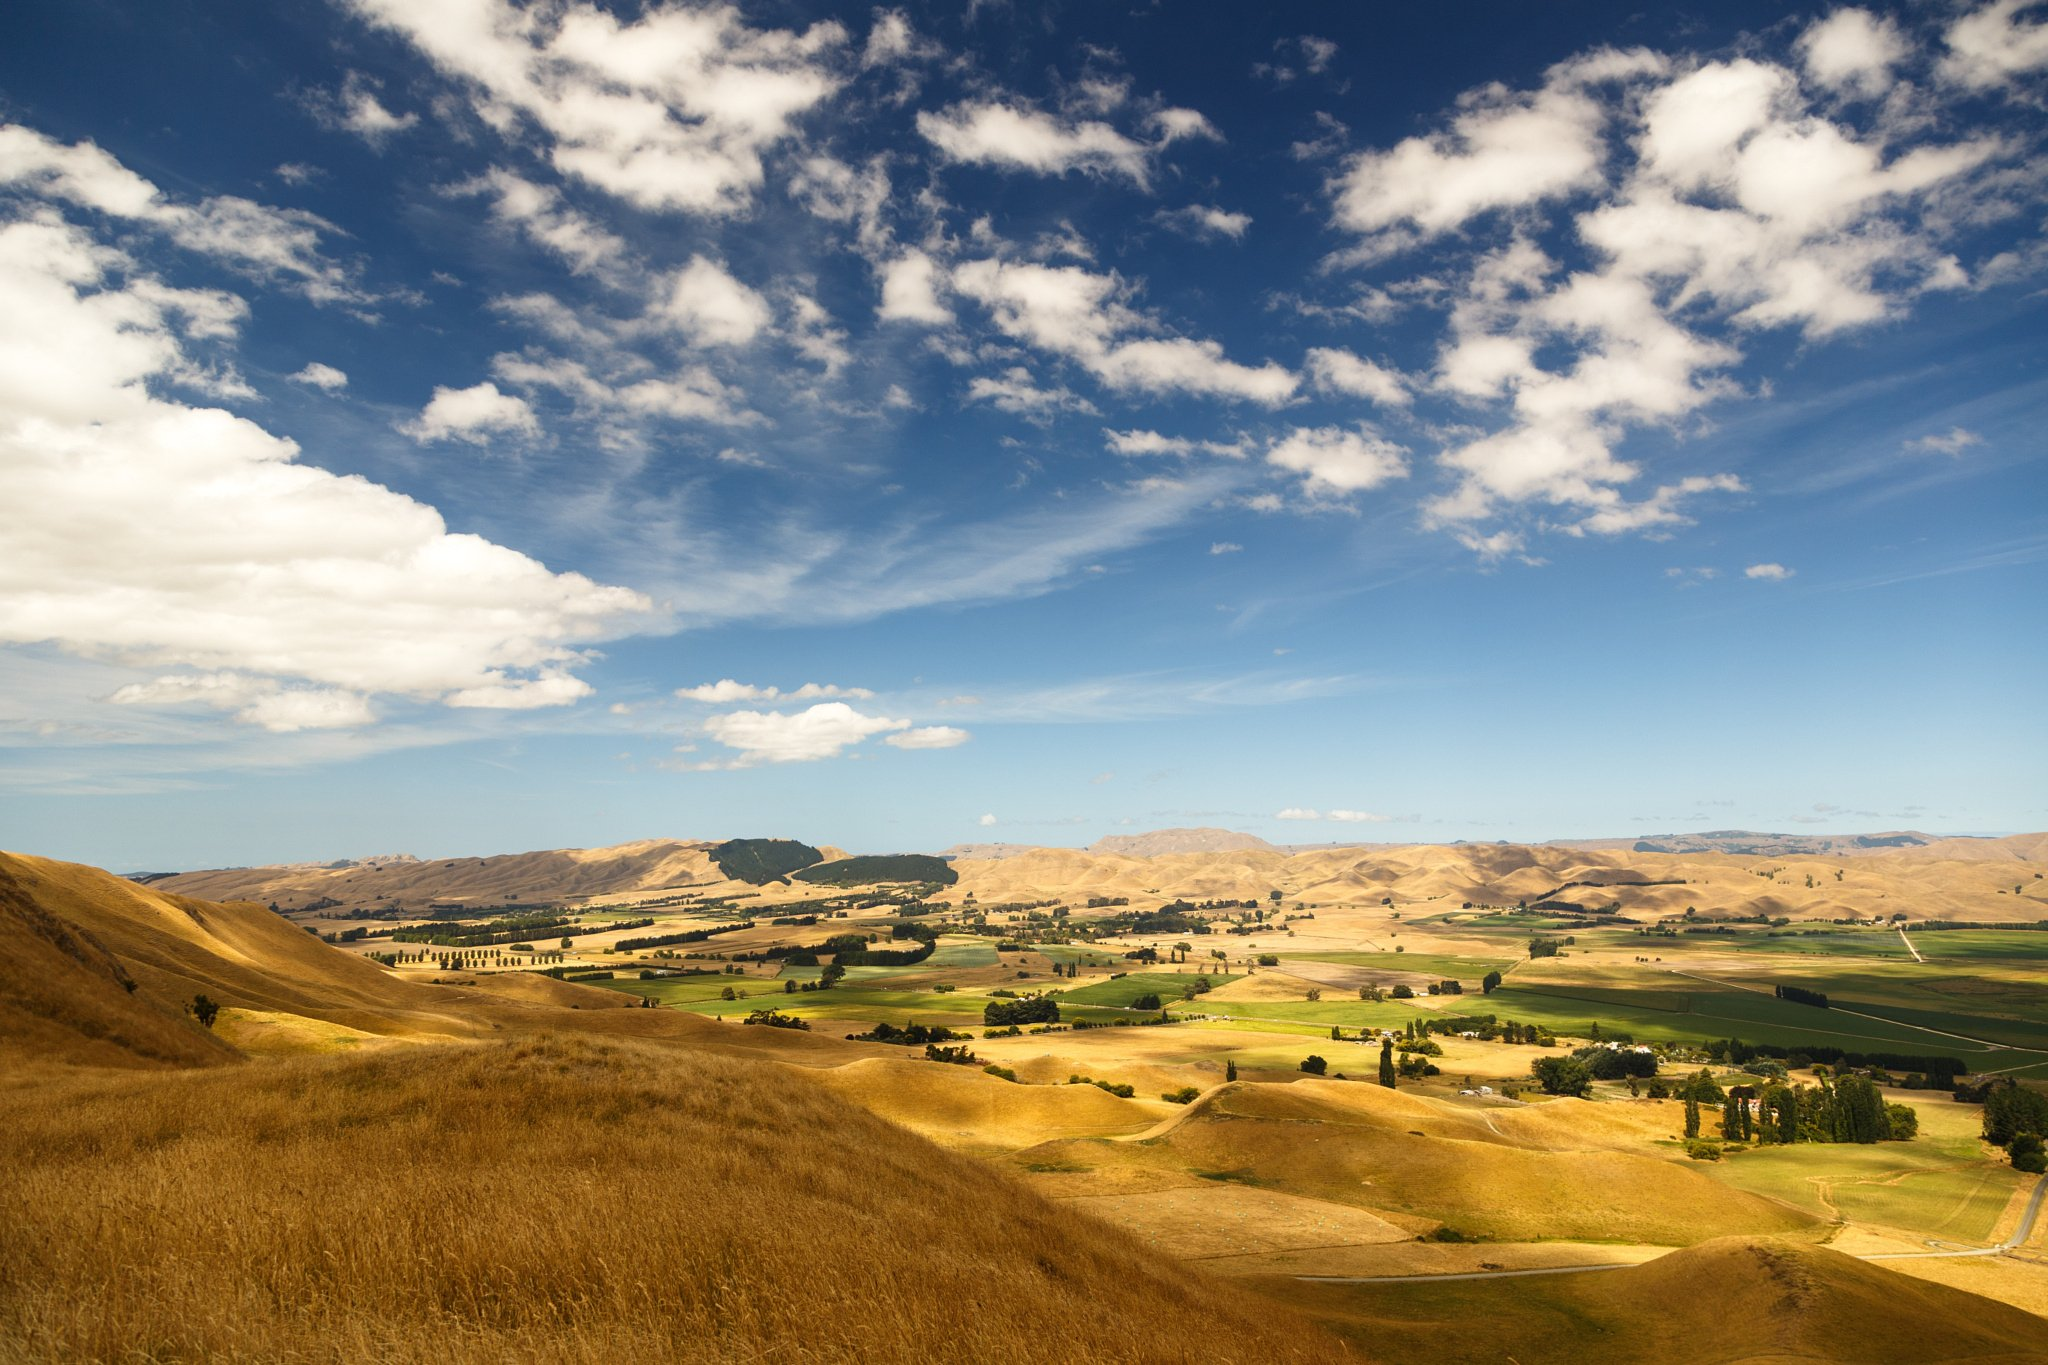 New Zealand Time Wallpaper: Countryside Wallpapers, Photos And Desktop Backgrounds Up